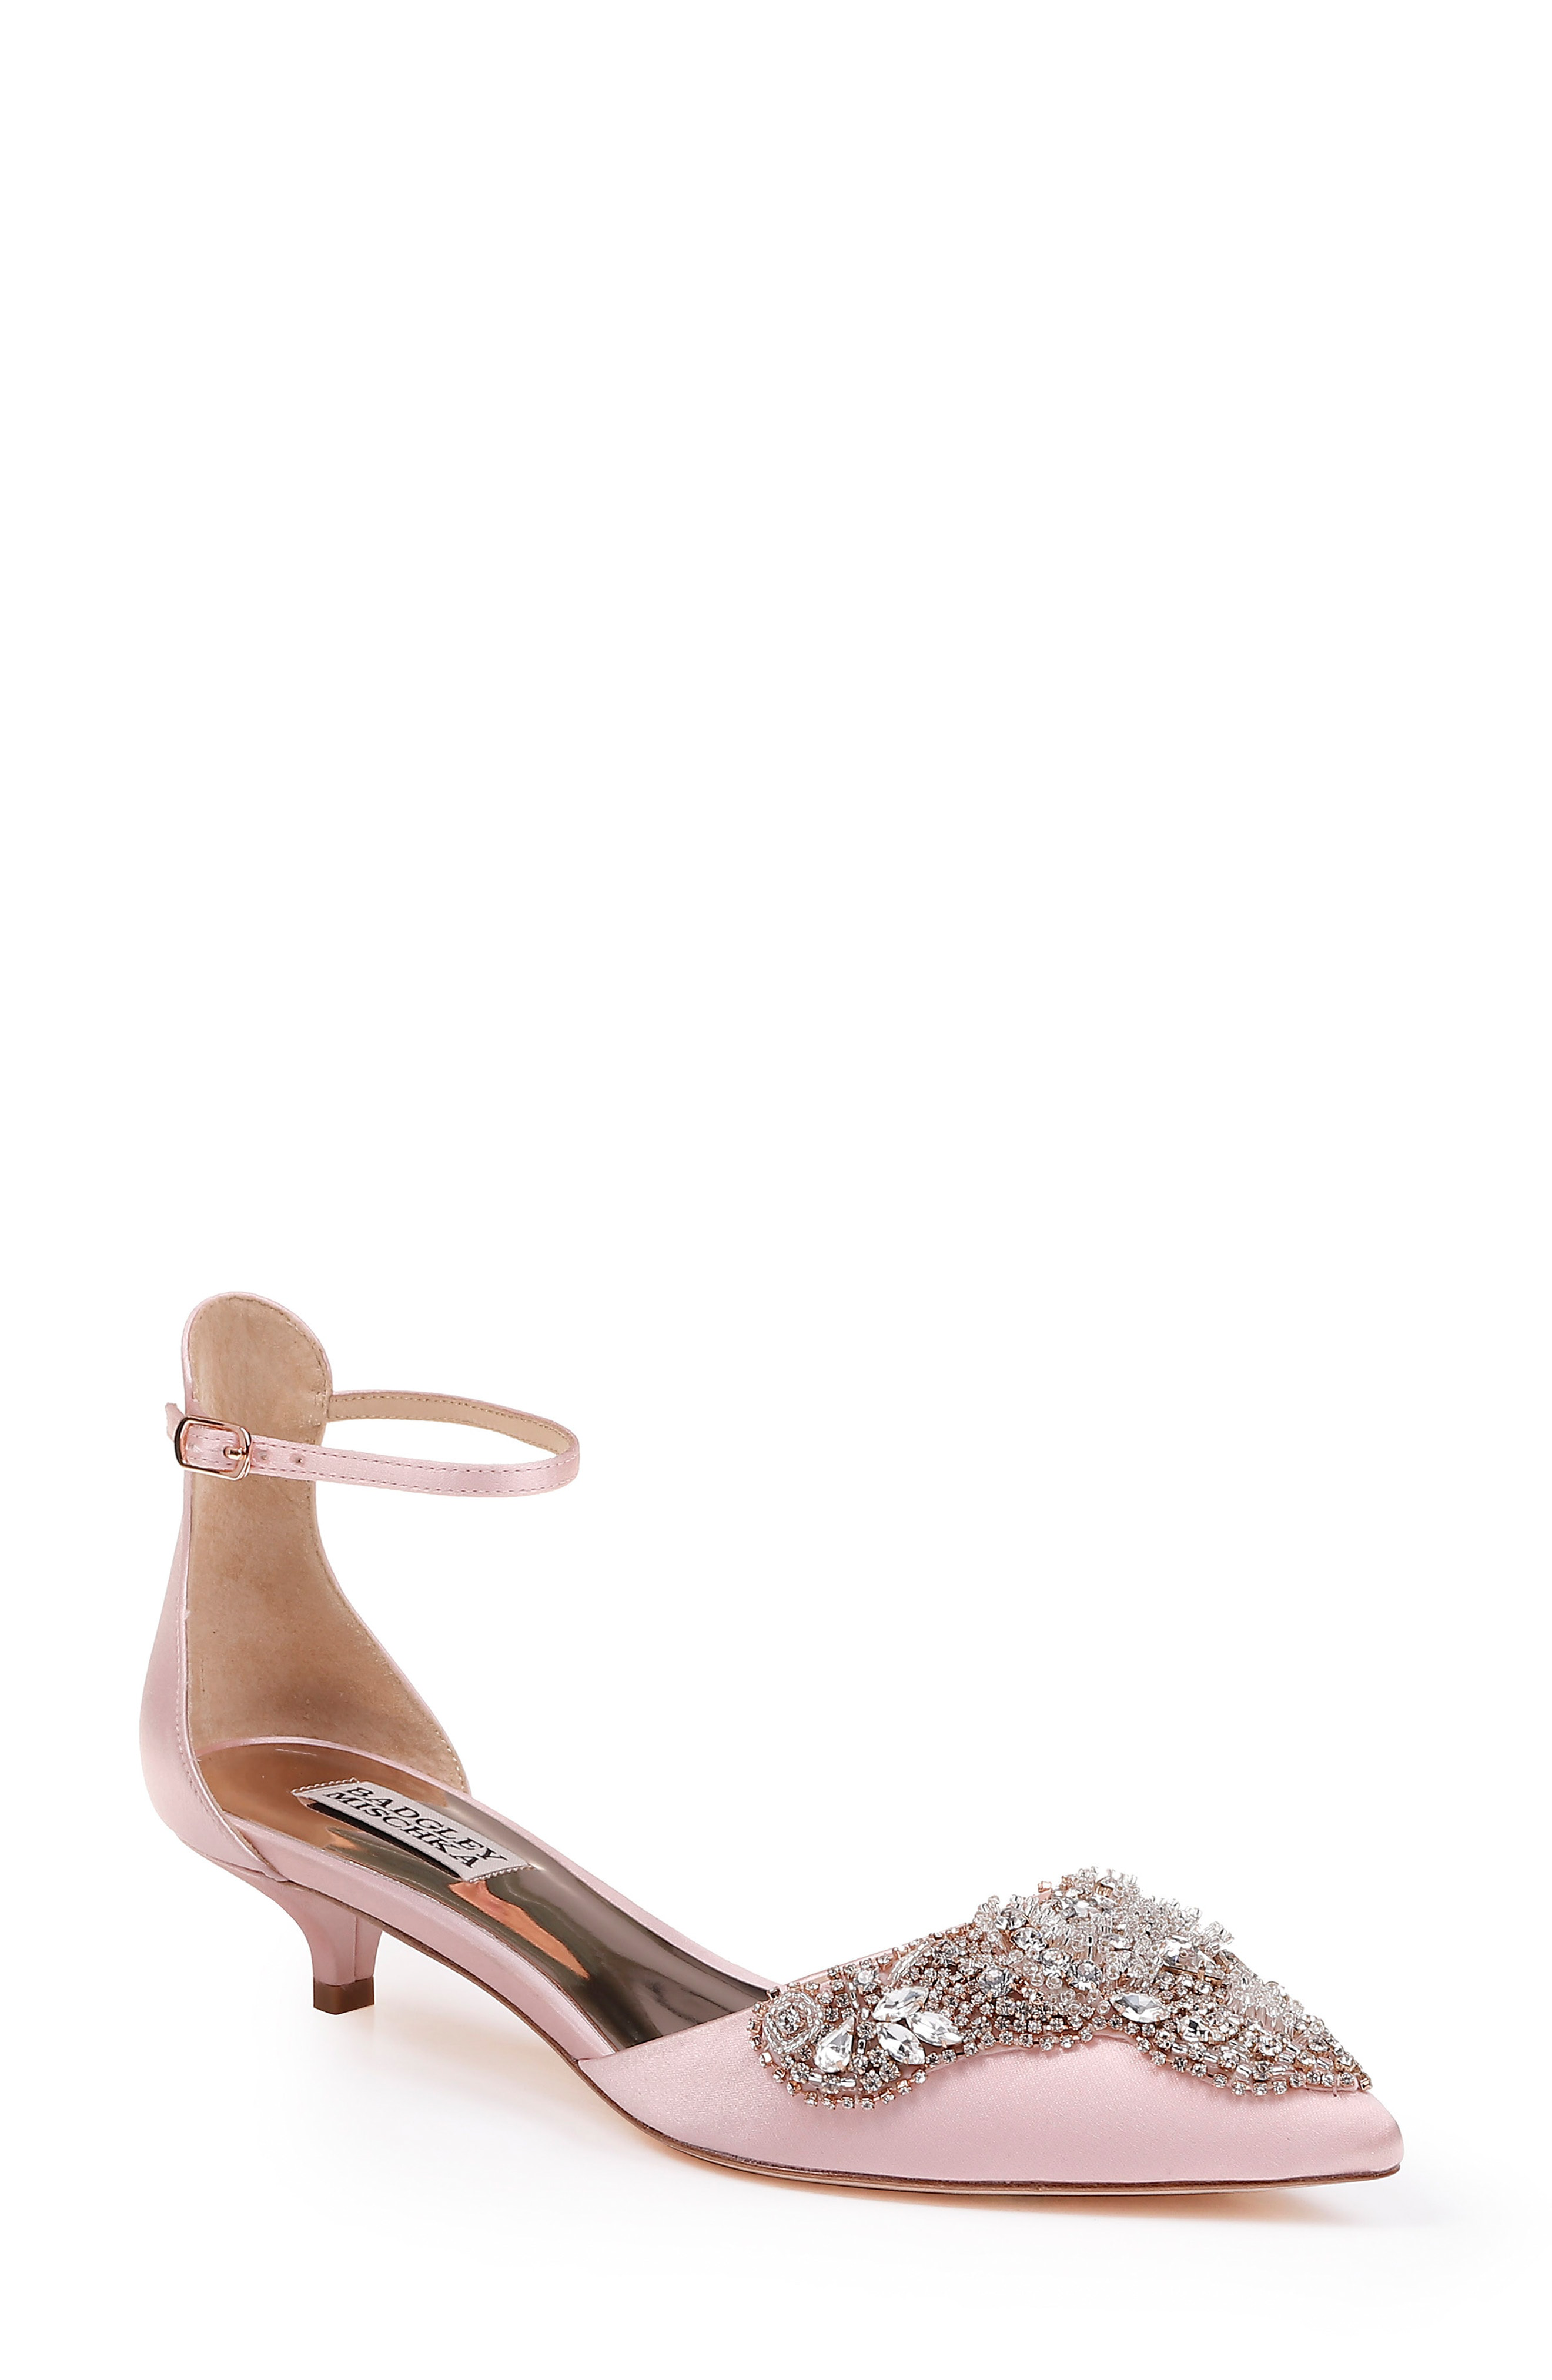 c3f6a59a145c Badgley Mischka Fiana Ankle Strap Pump In Powder Pink Satin